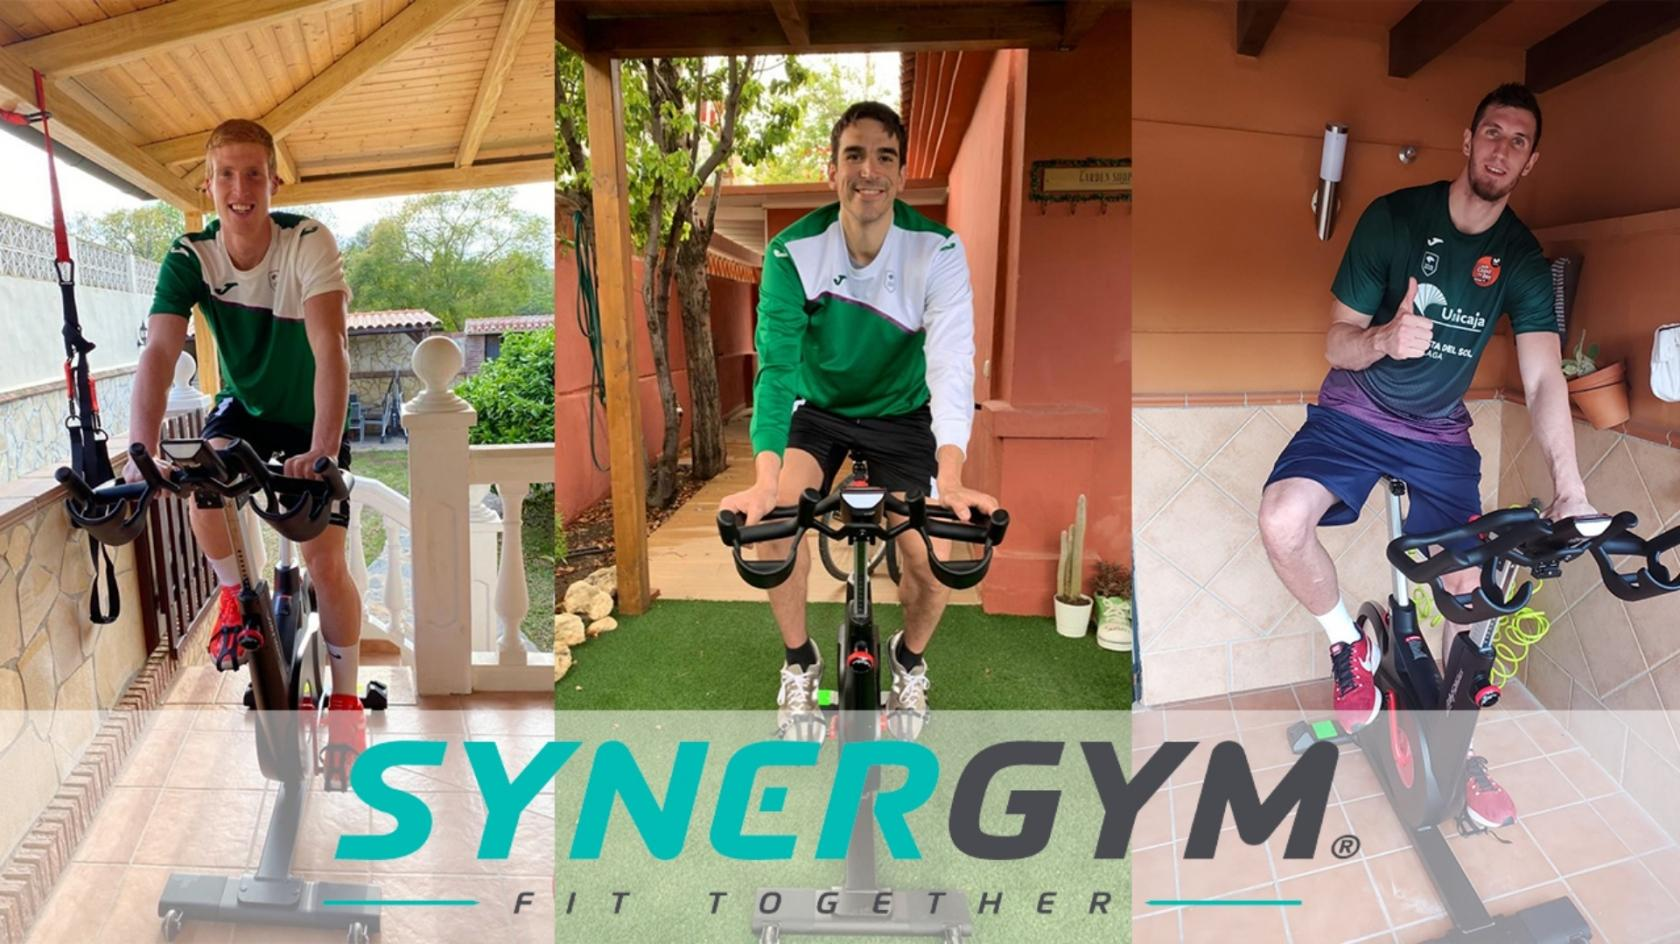 Synergym provides indoor cycle bikes for all players